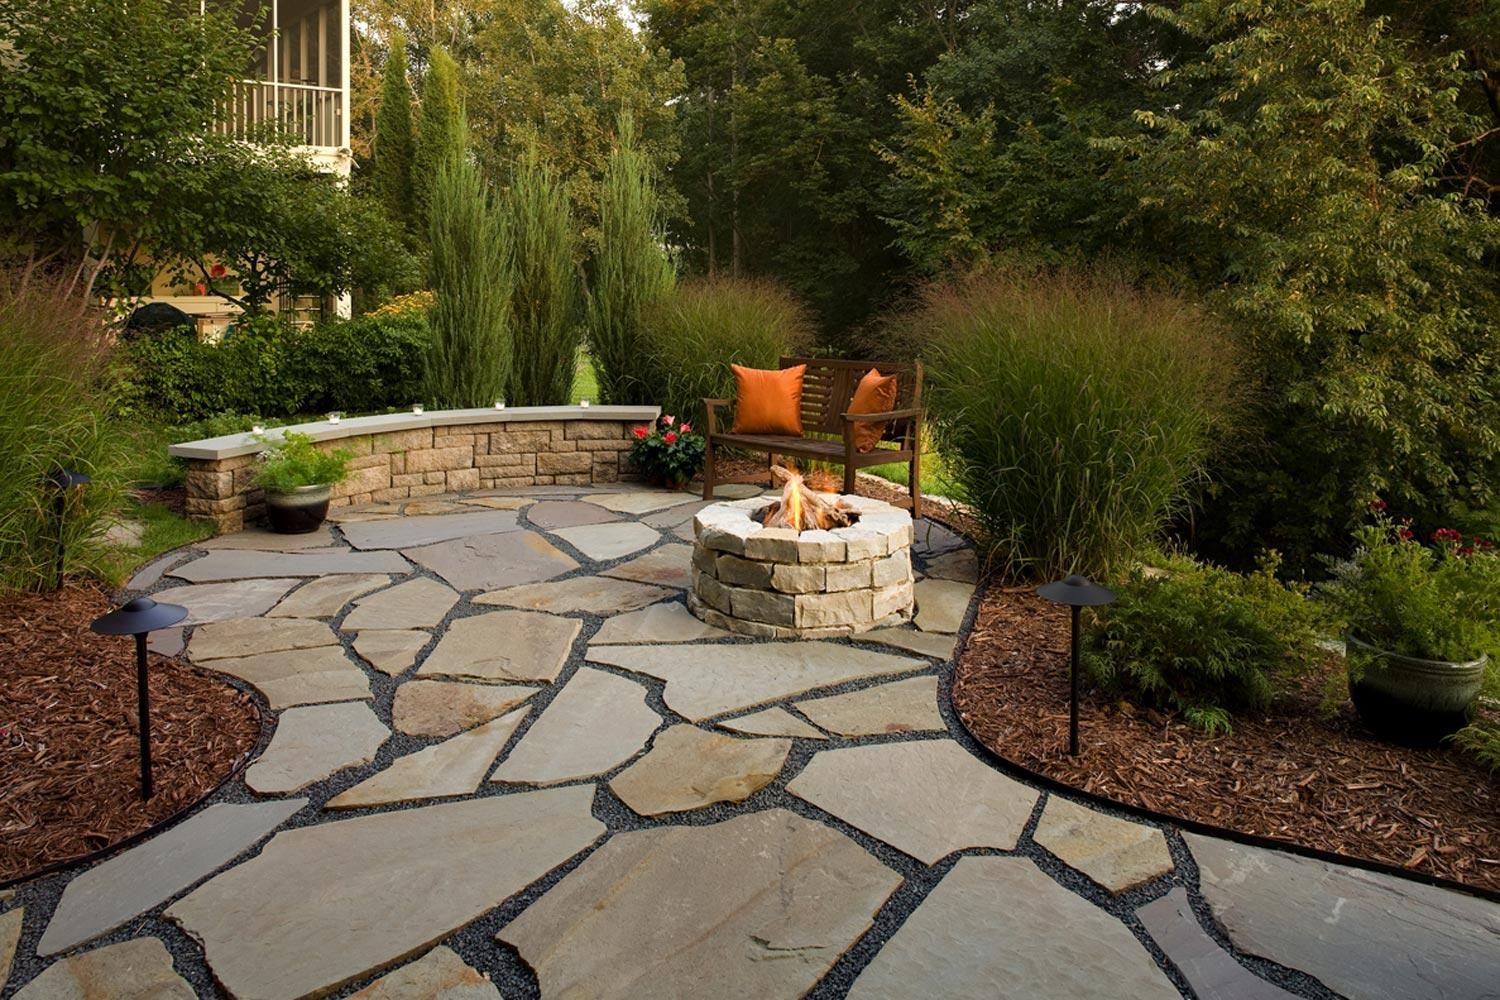 Small natural stone paver patio overlooking a ravine.